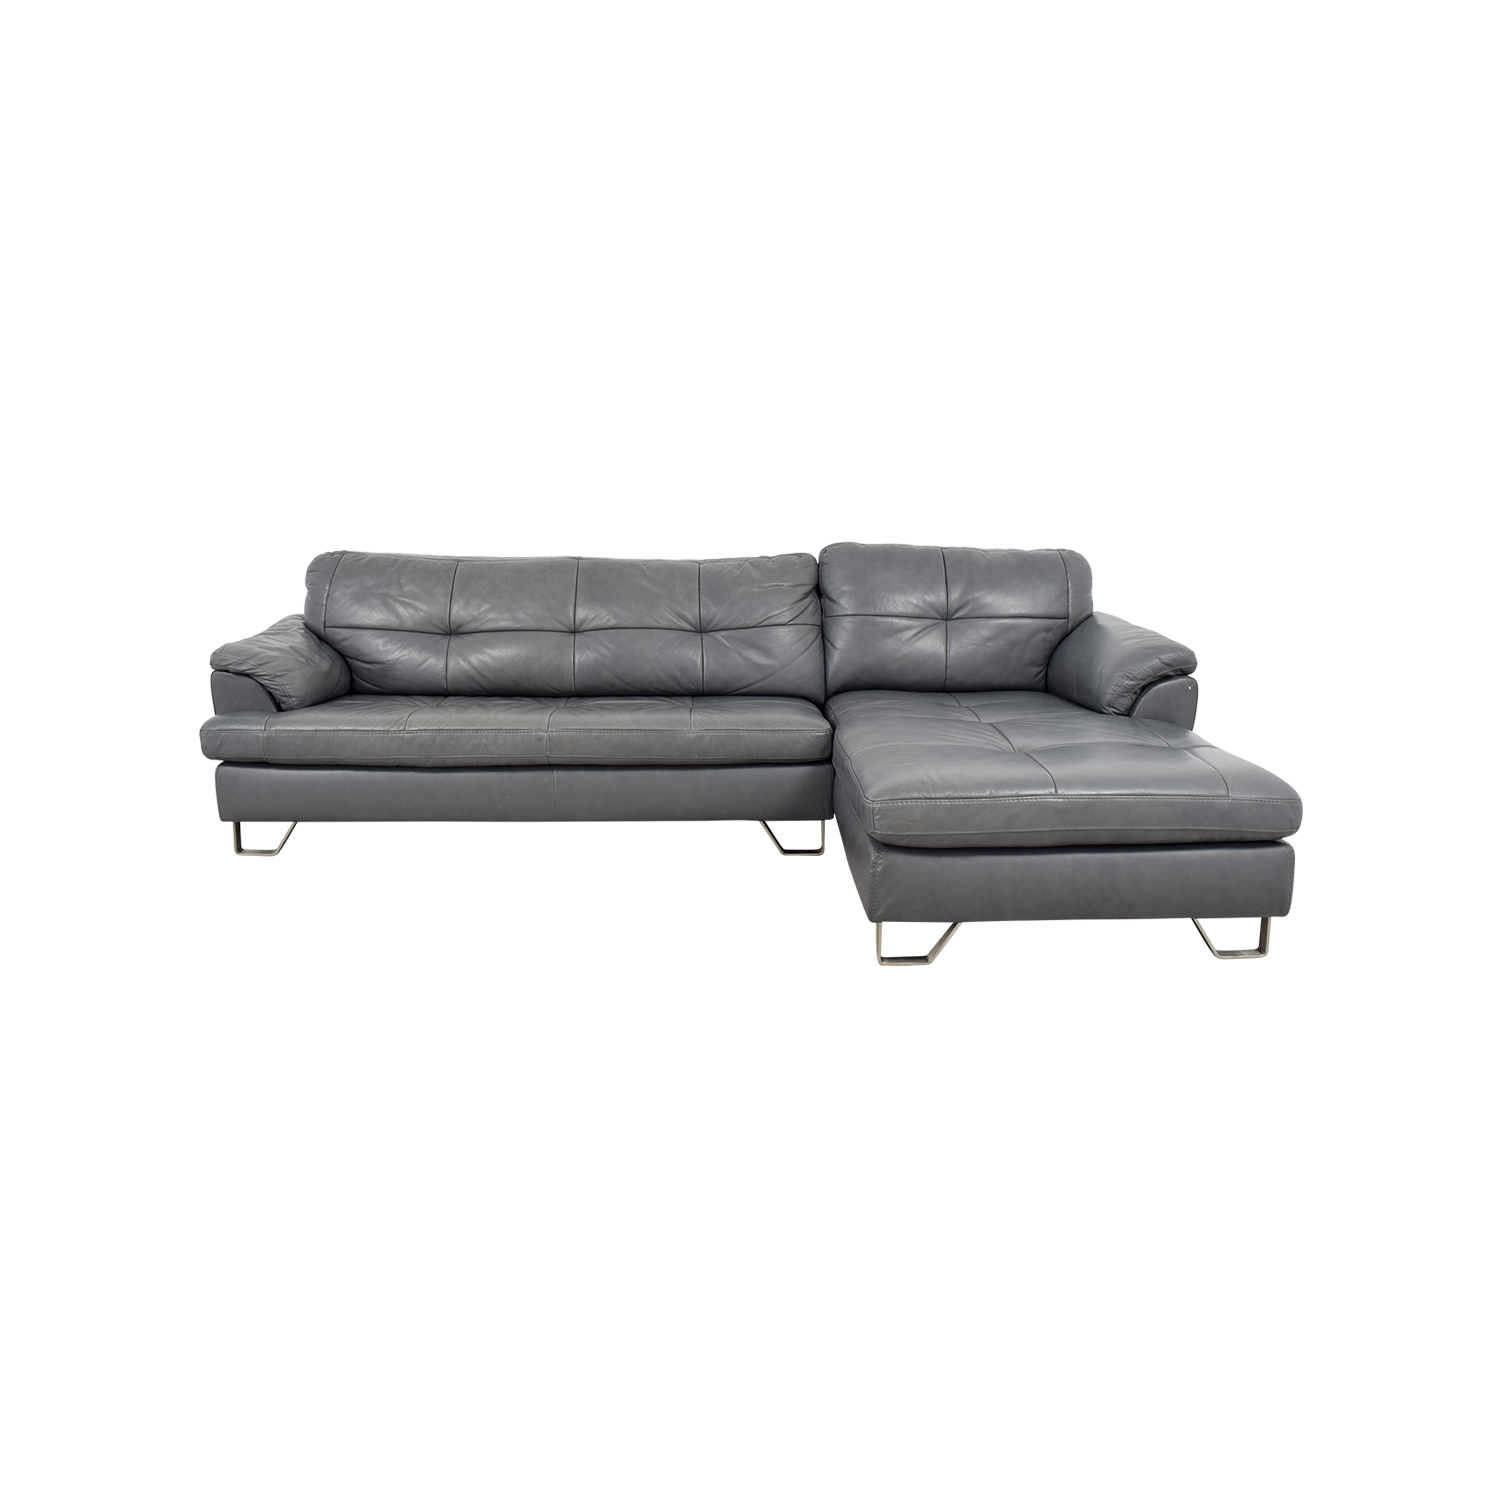 83 Off Ashley Furniture Ashley Furniture Gray Tufted Sectional